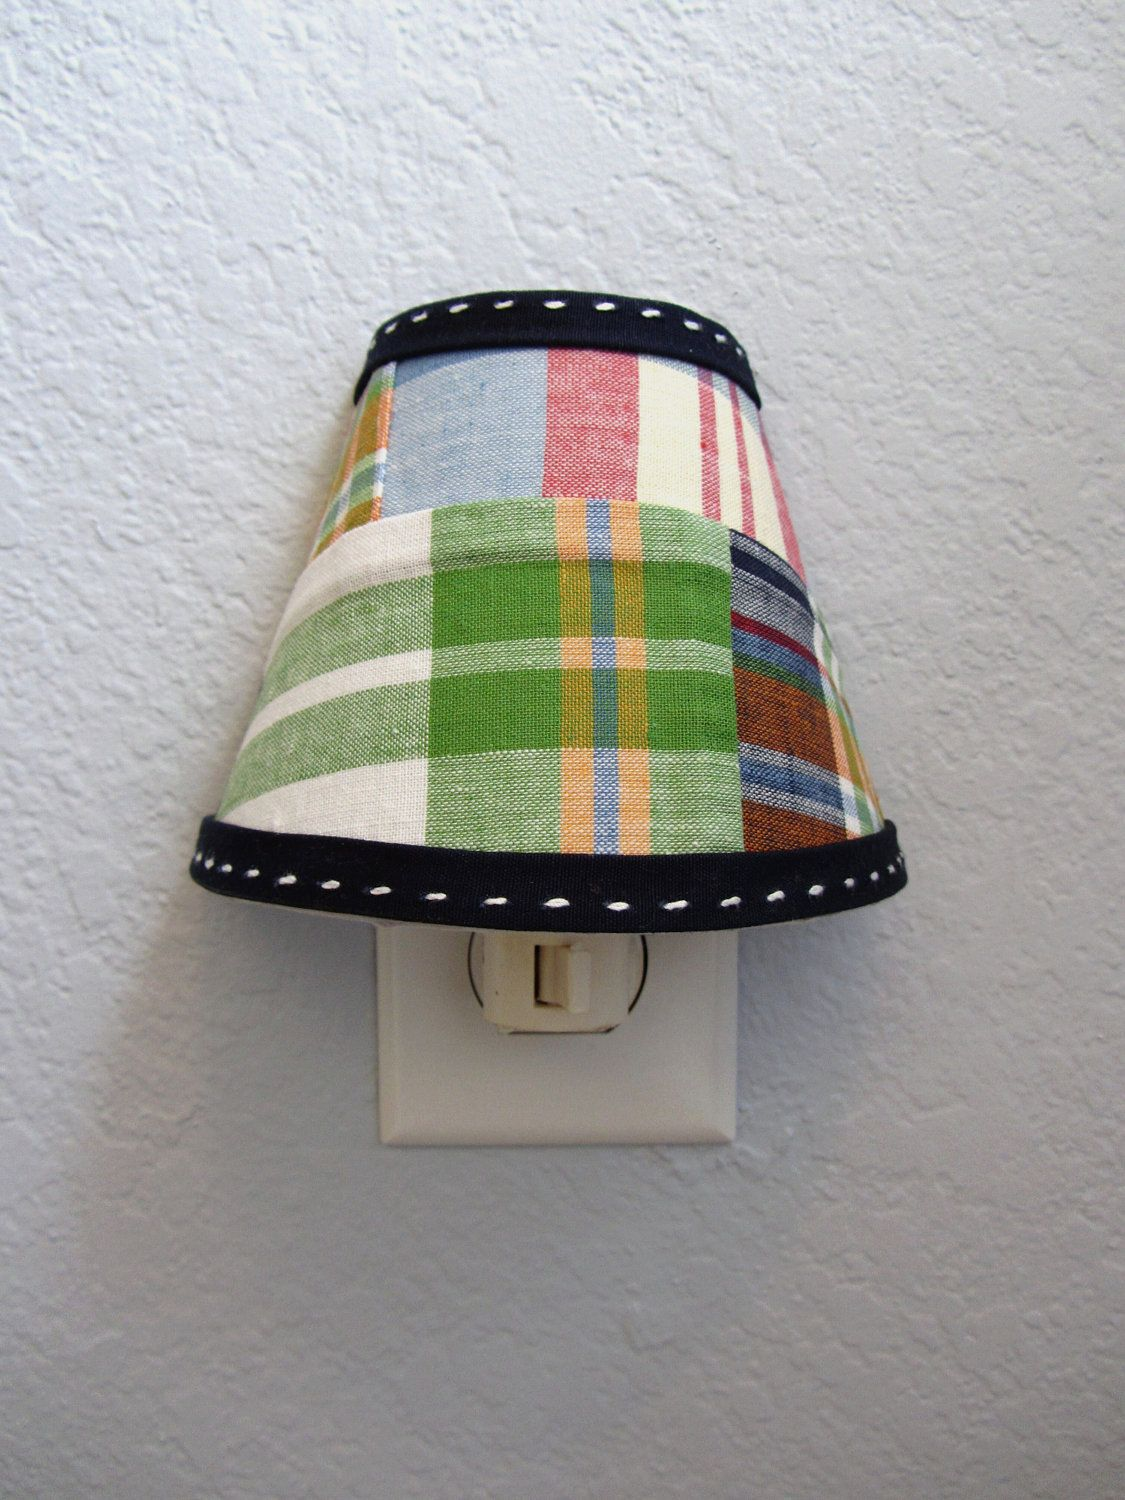 Made To Order Madras Fabric Night Light Made With Fabric From